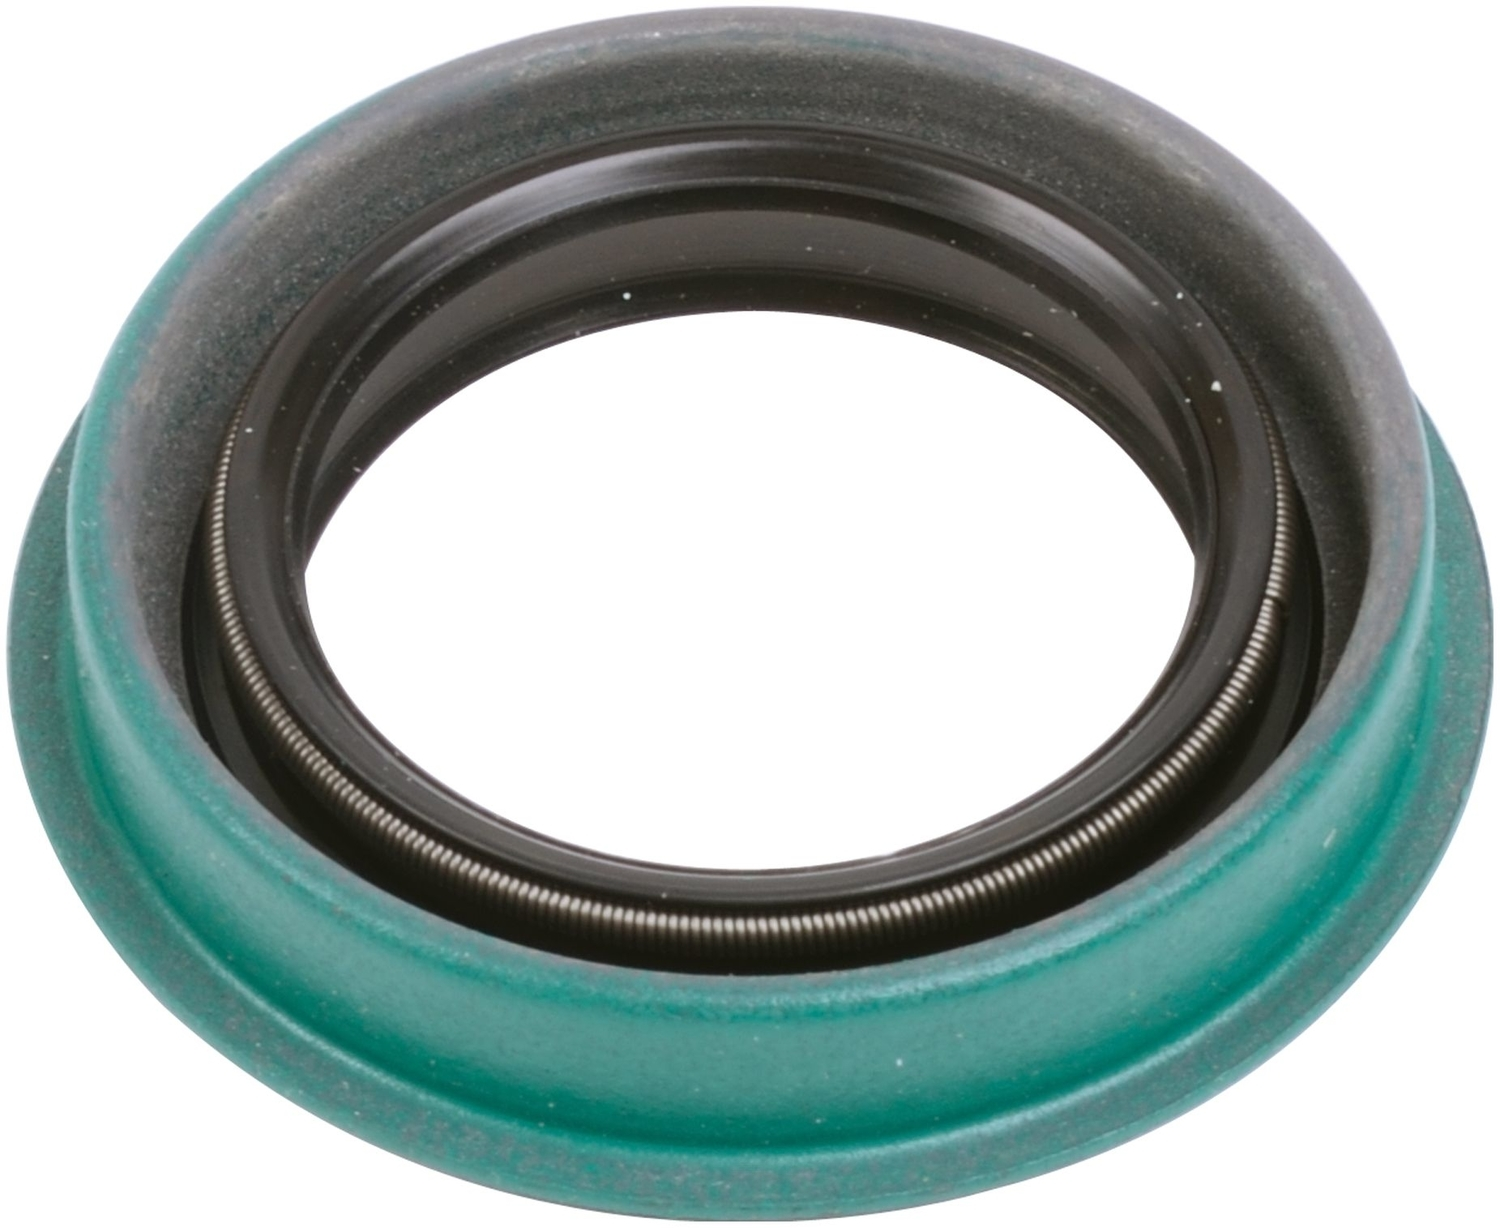 SKF (CHICAGO RAWHIDE) - Manual Trans Output Shaft Seal - SKF 15750